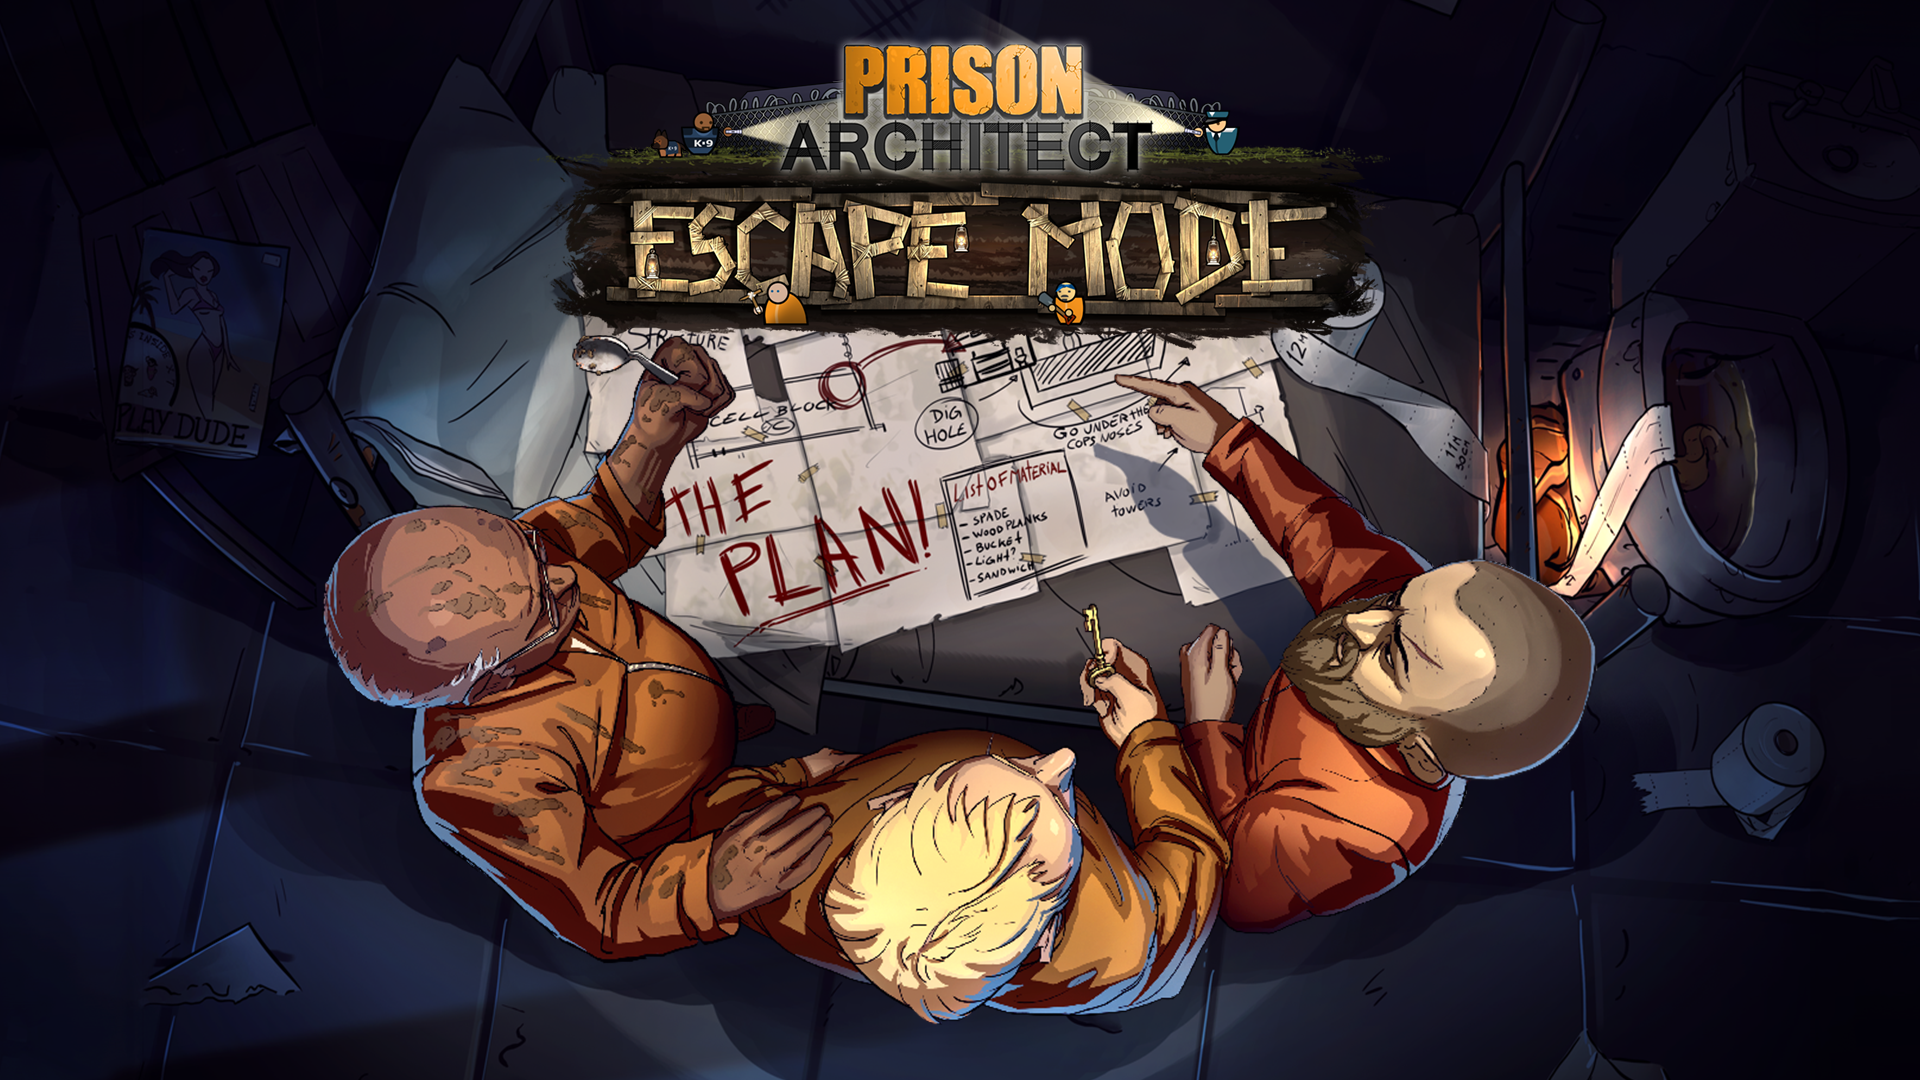 Video For The Great Escape: Prison Architect's Popular Escape Mode Breaks Free on Xbox One